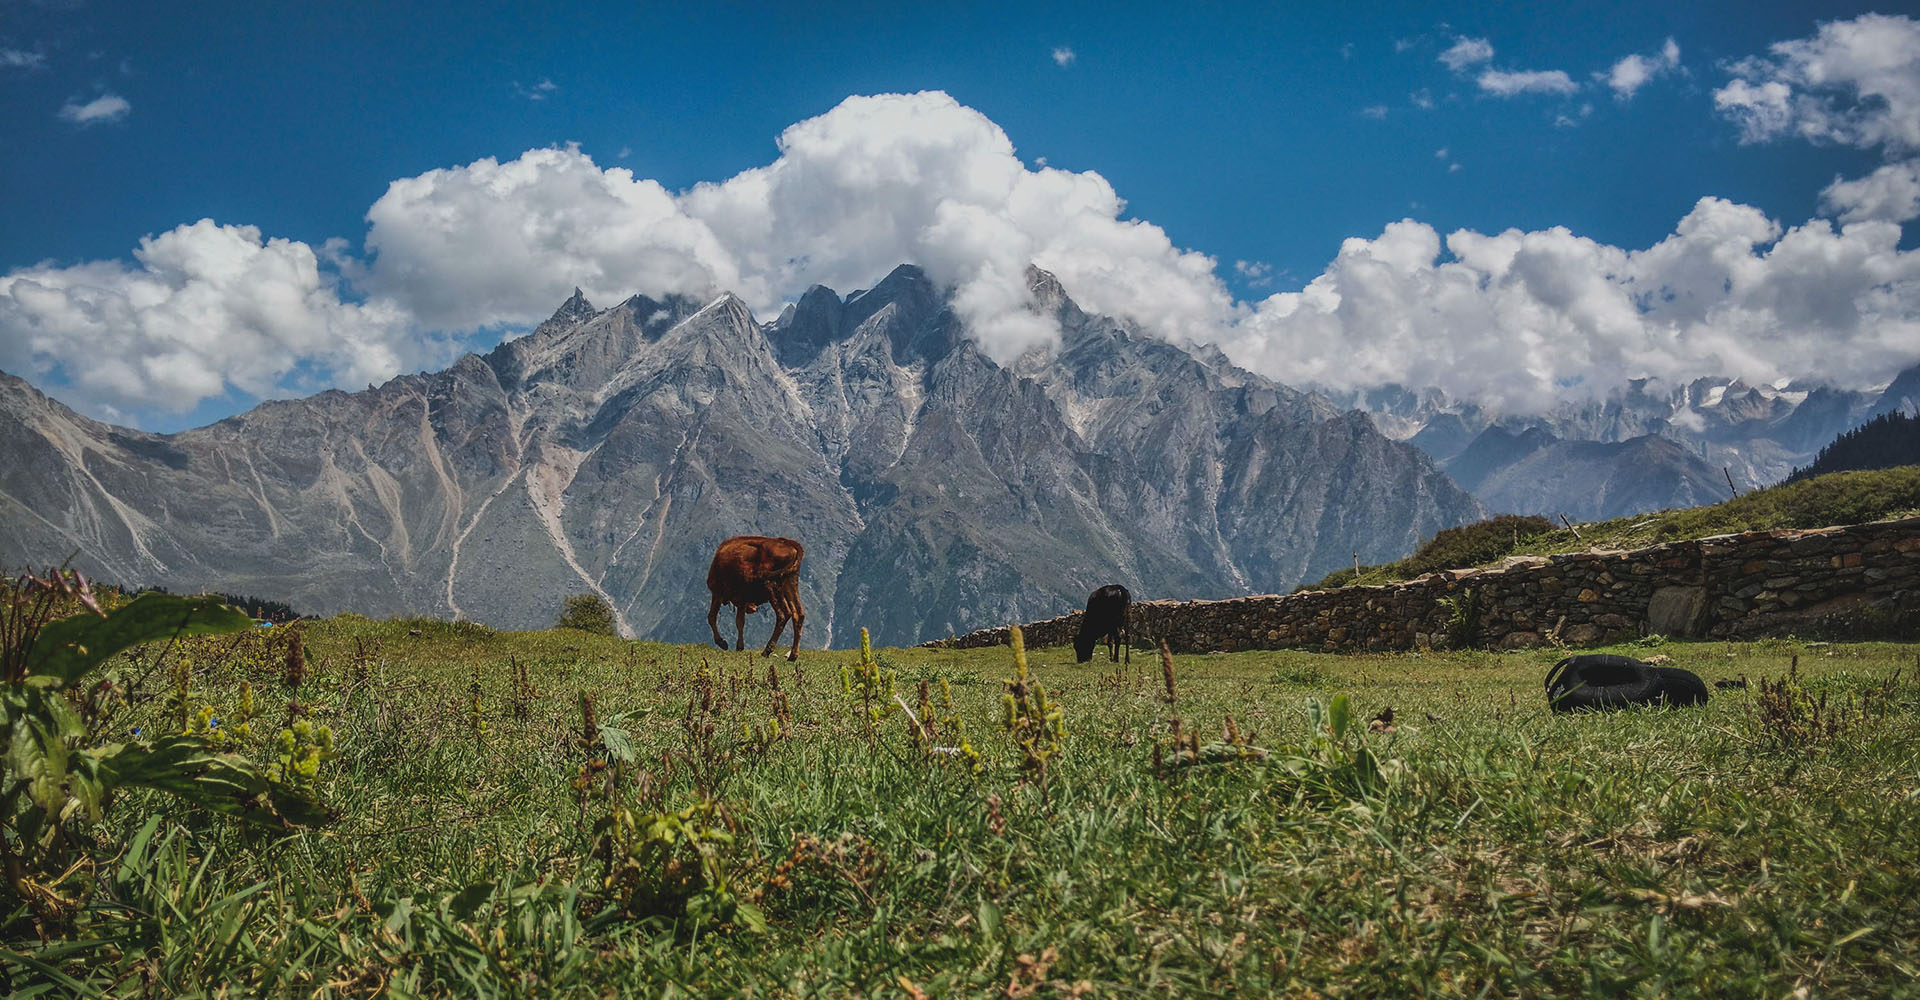 Our Top Picks in Sangla Valley